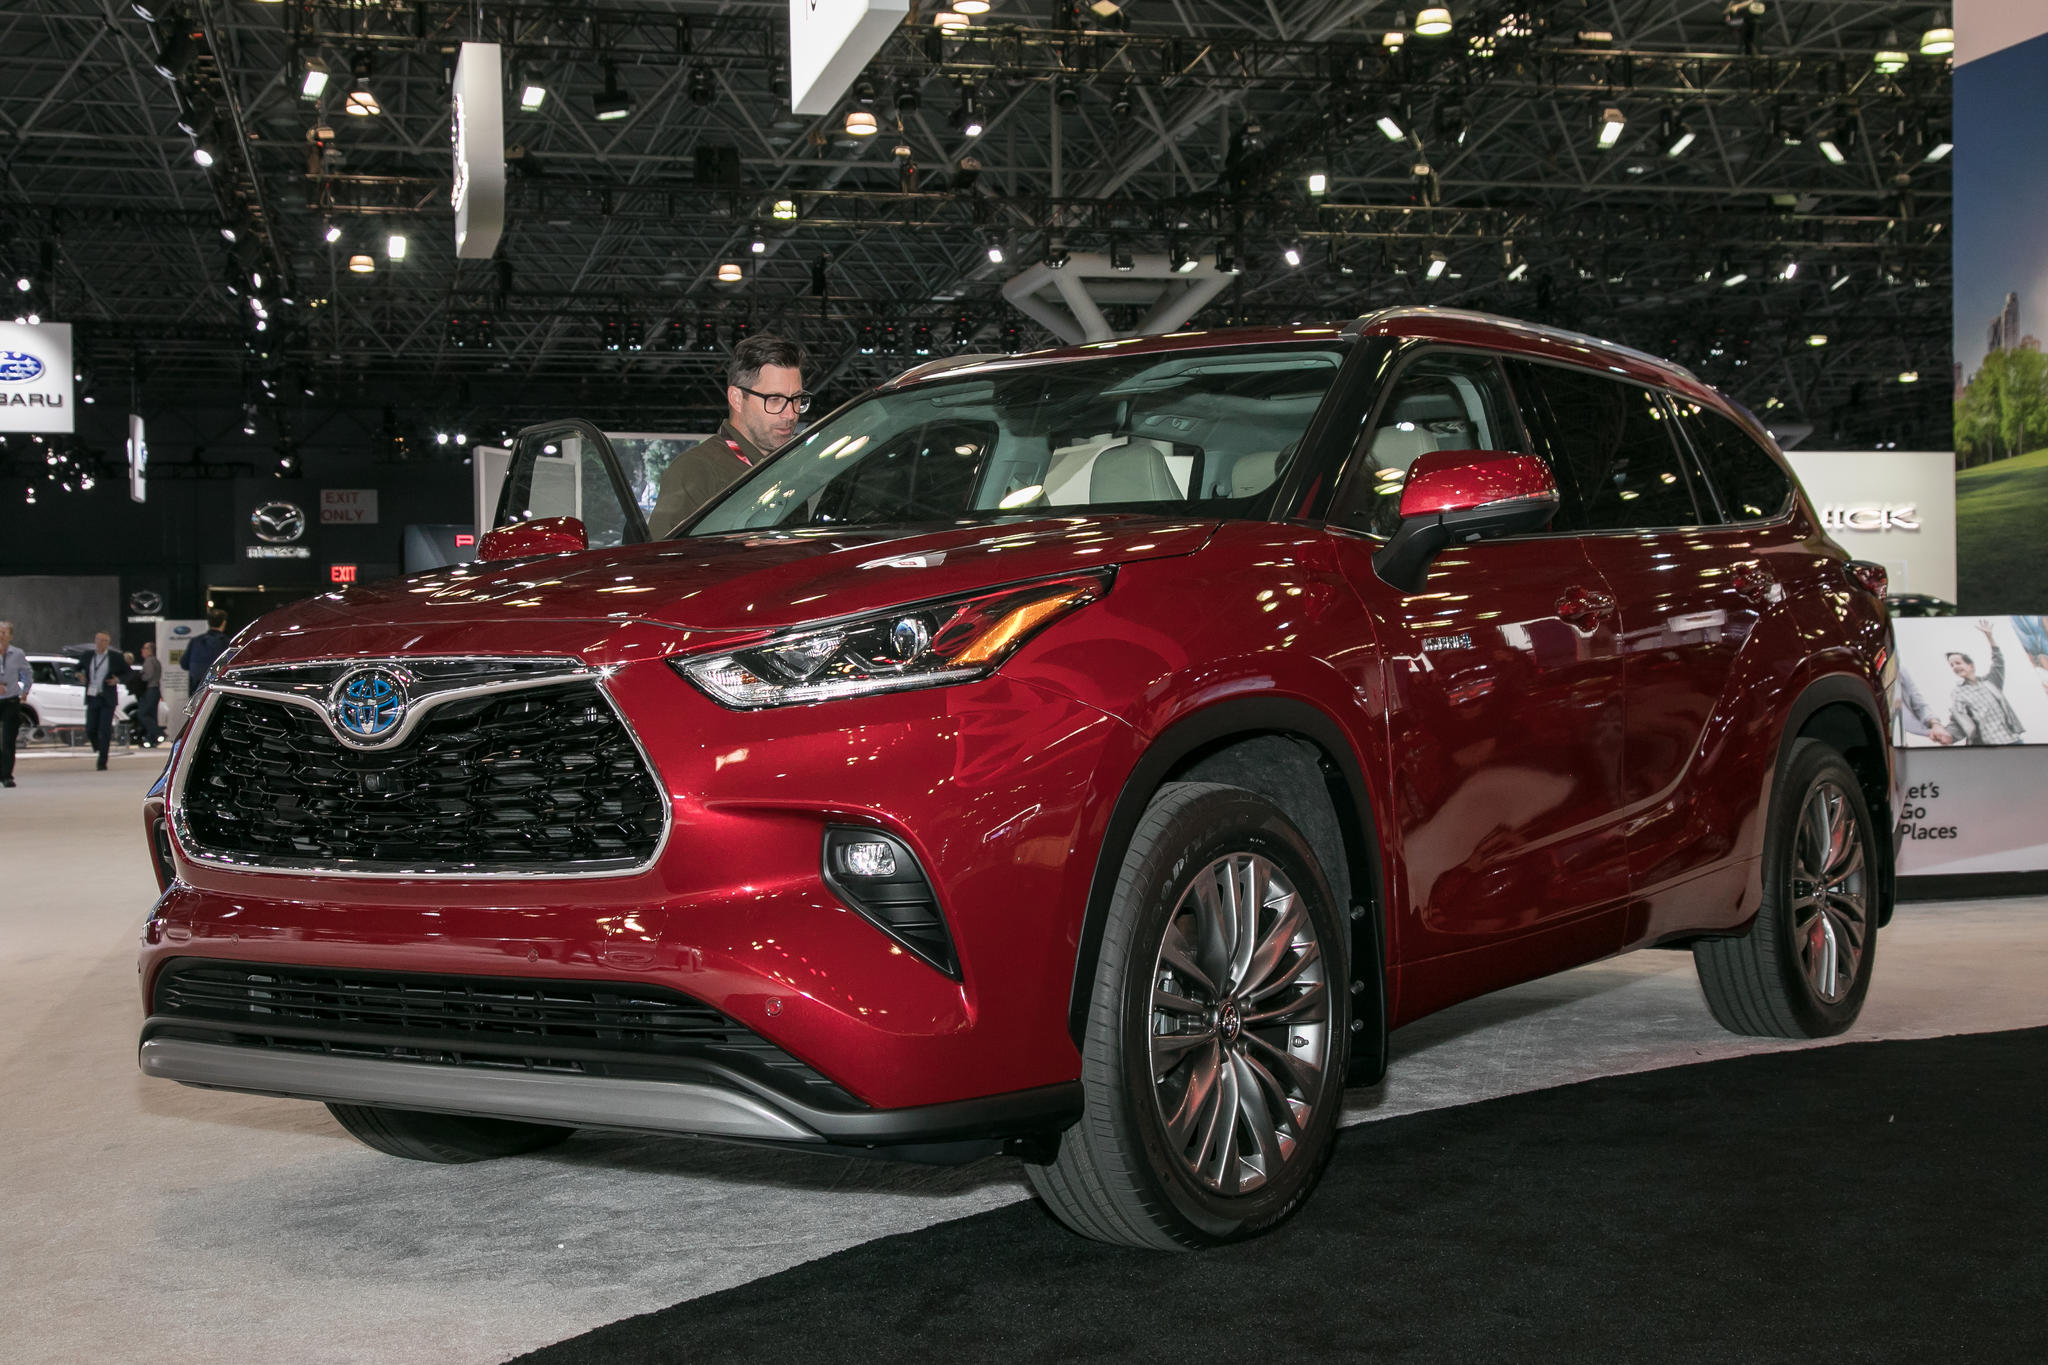 2019 Miami Auto Show 2020 Toyota Highlander And 4 Other